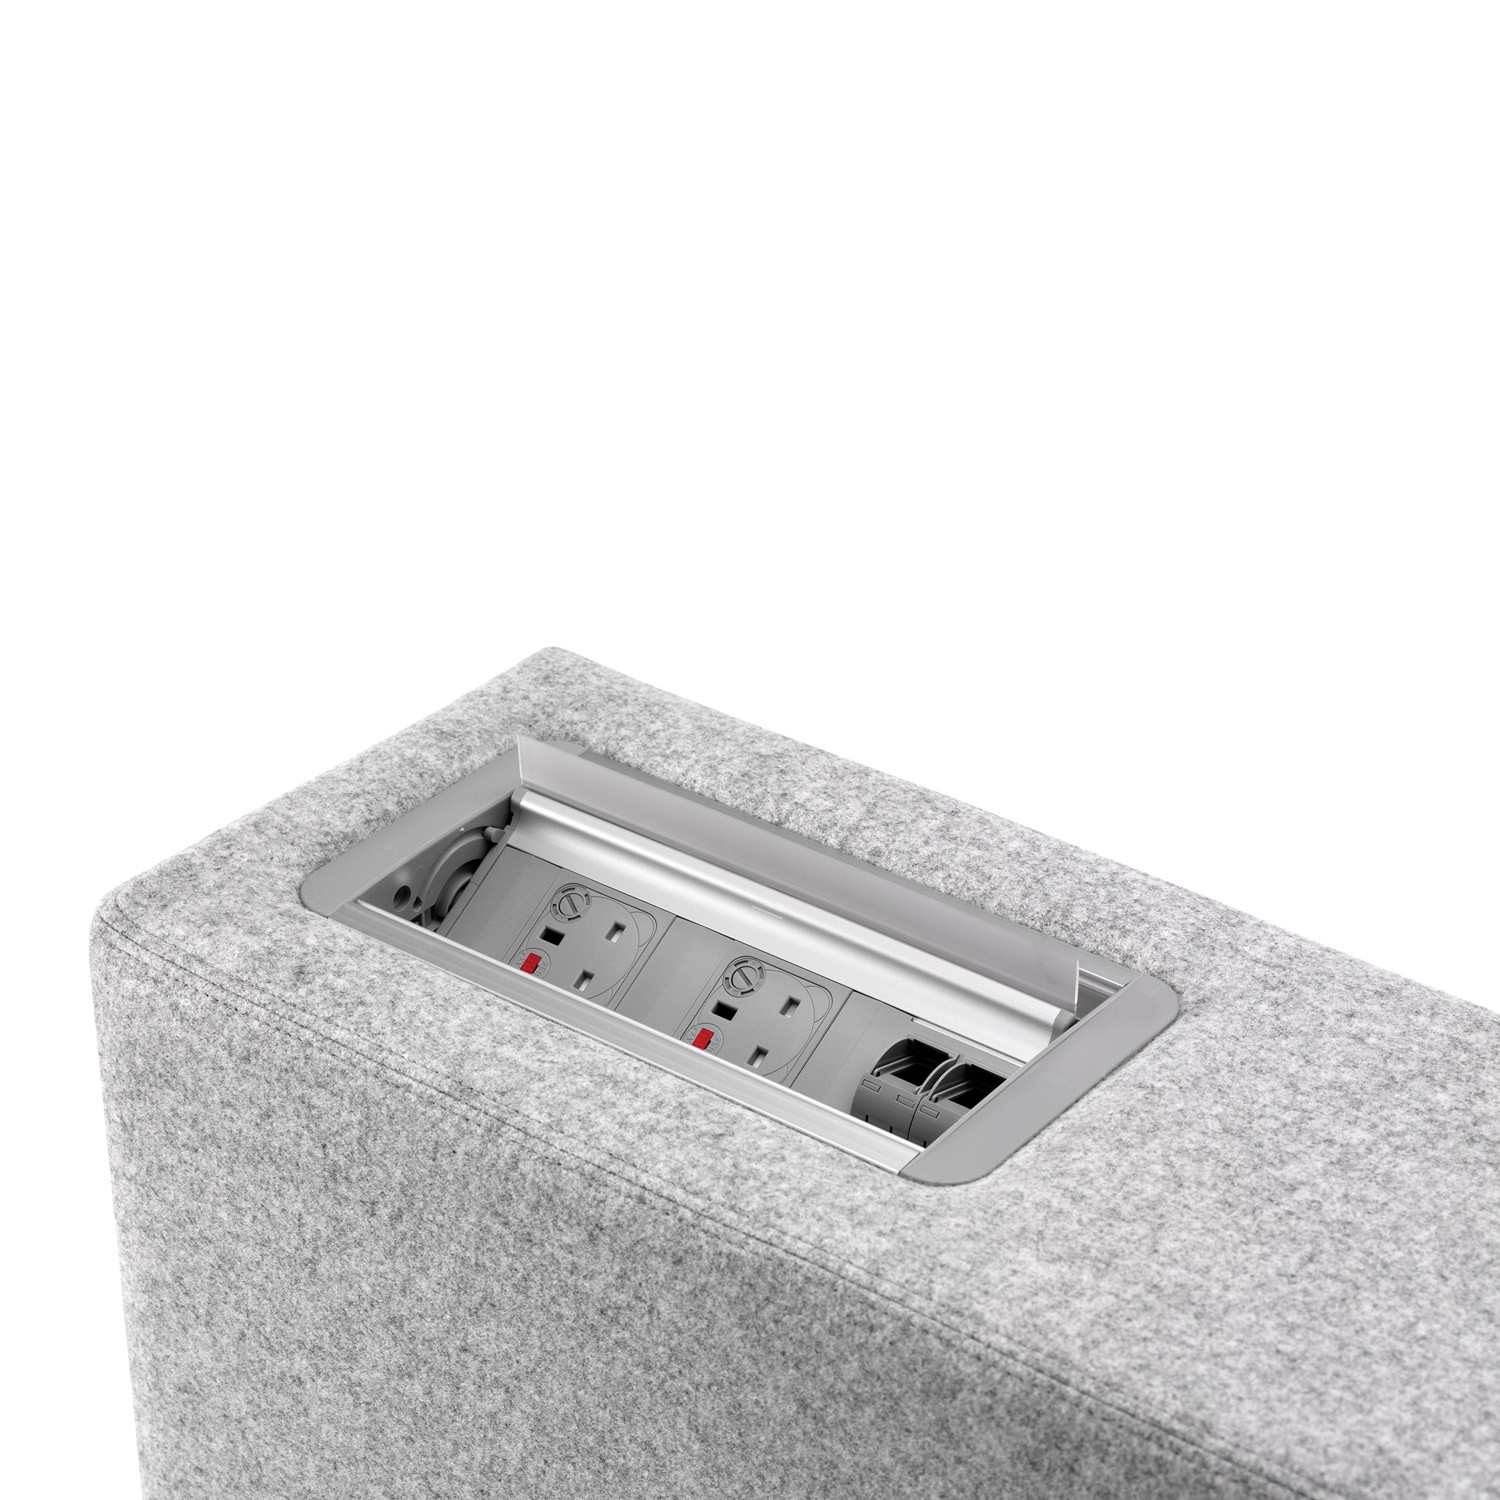 Intro Modular Seating USB Port